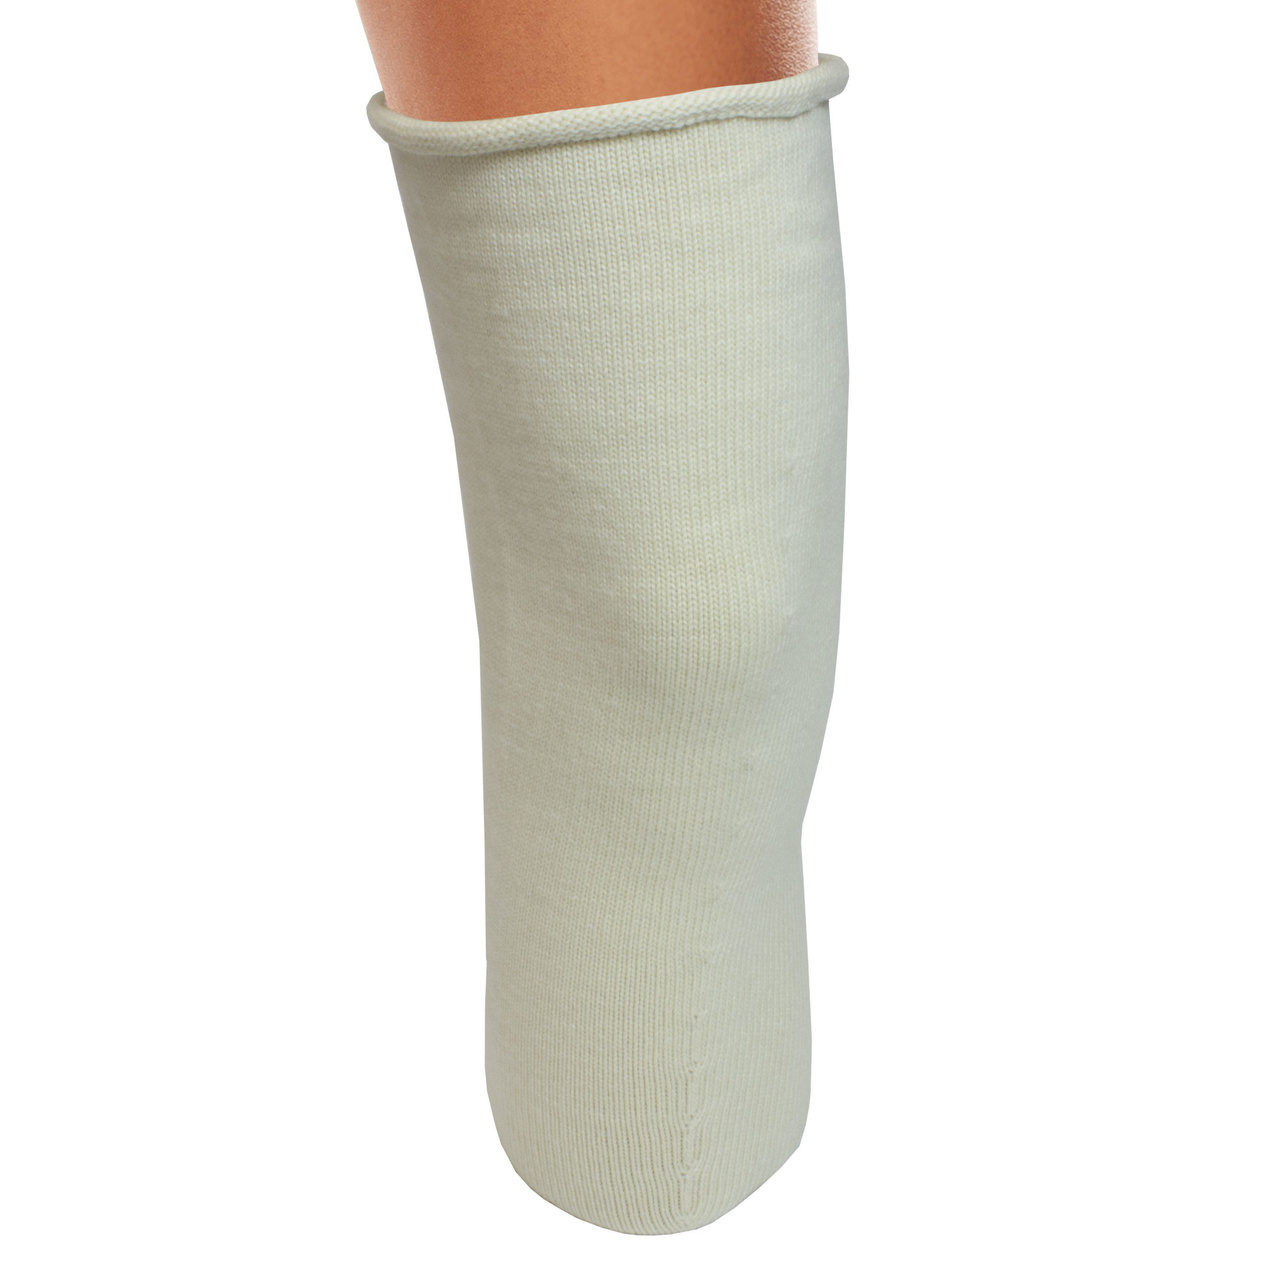 ada5c4f66a Below the Knee Stump Socks for PTB Limb Wearers - Freeman Mfg Co.